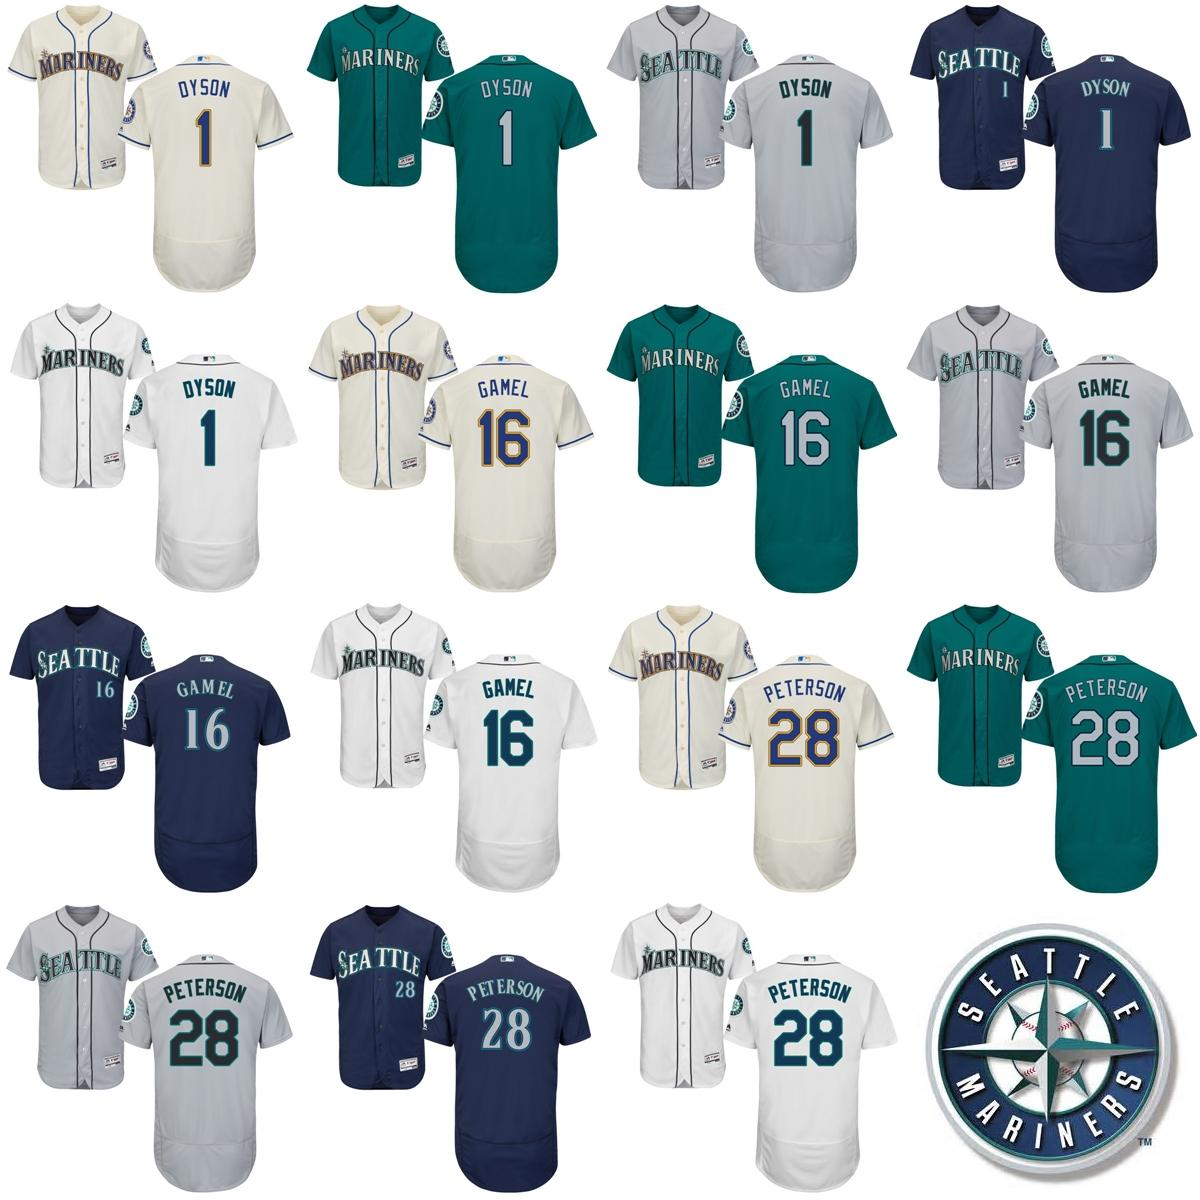 b9189ff40 ... Green with Camo Number Salute To Service Baseball 2017 2017 Mens Womens  Kids Seattle Mariners 1 Jarrod Dyson 16 Ben Gamel 28 D.J. Peterson ...